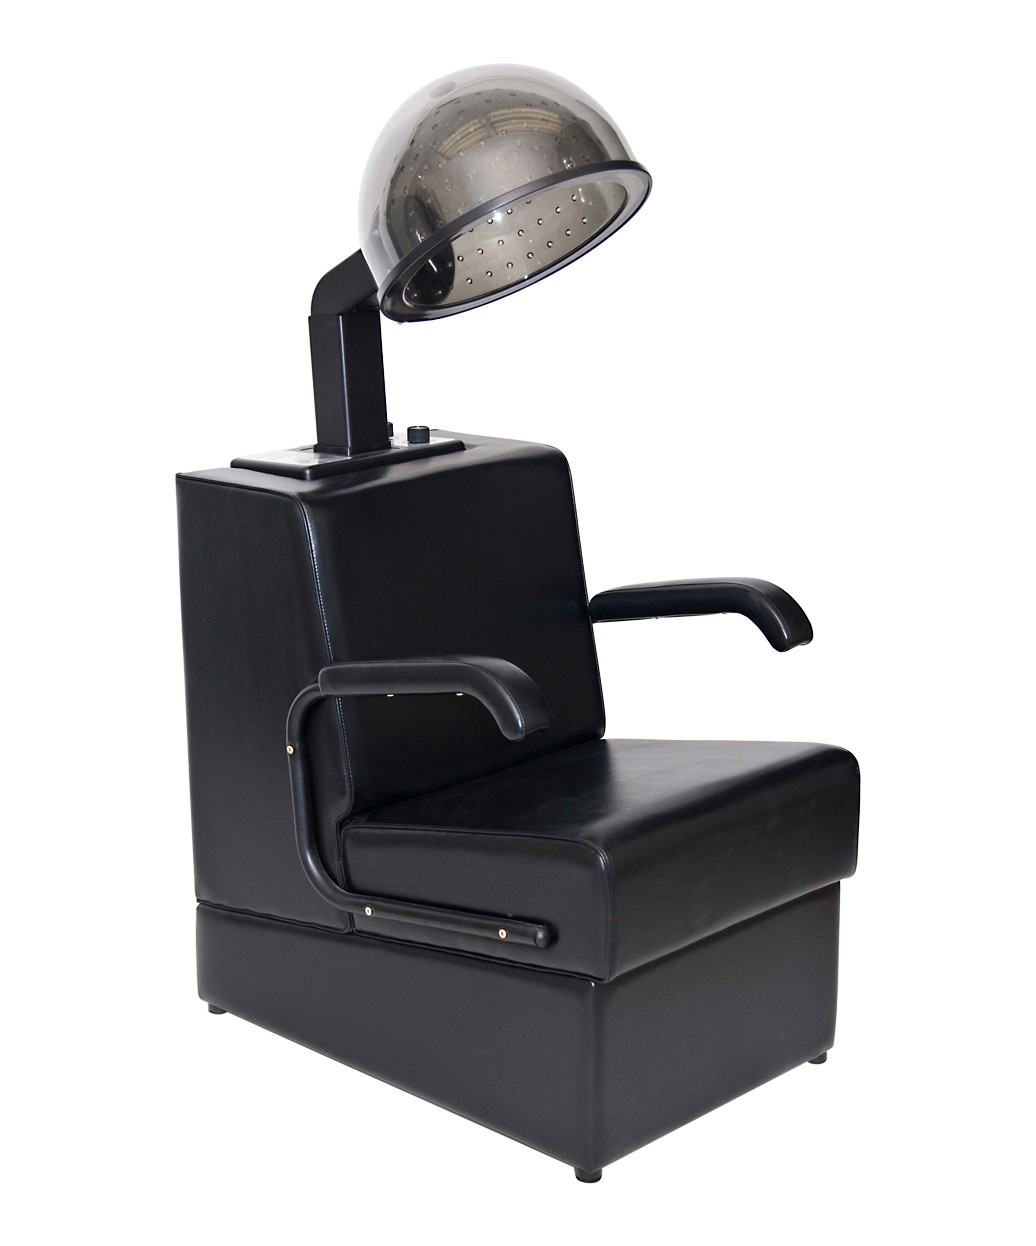 chair hair dryer milano office chairs zimbabwe 4 operator echo and miami salon package